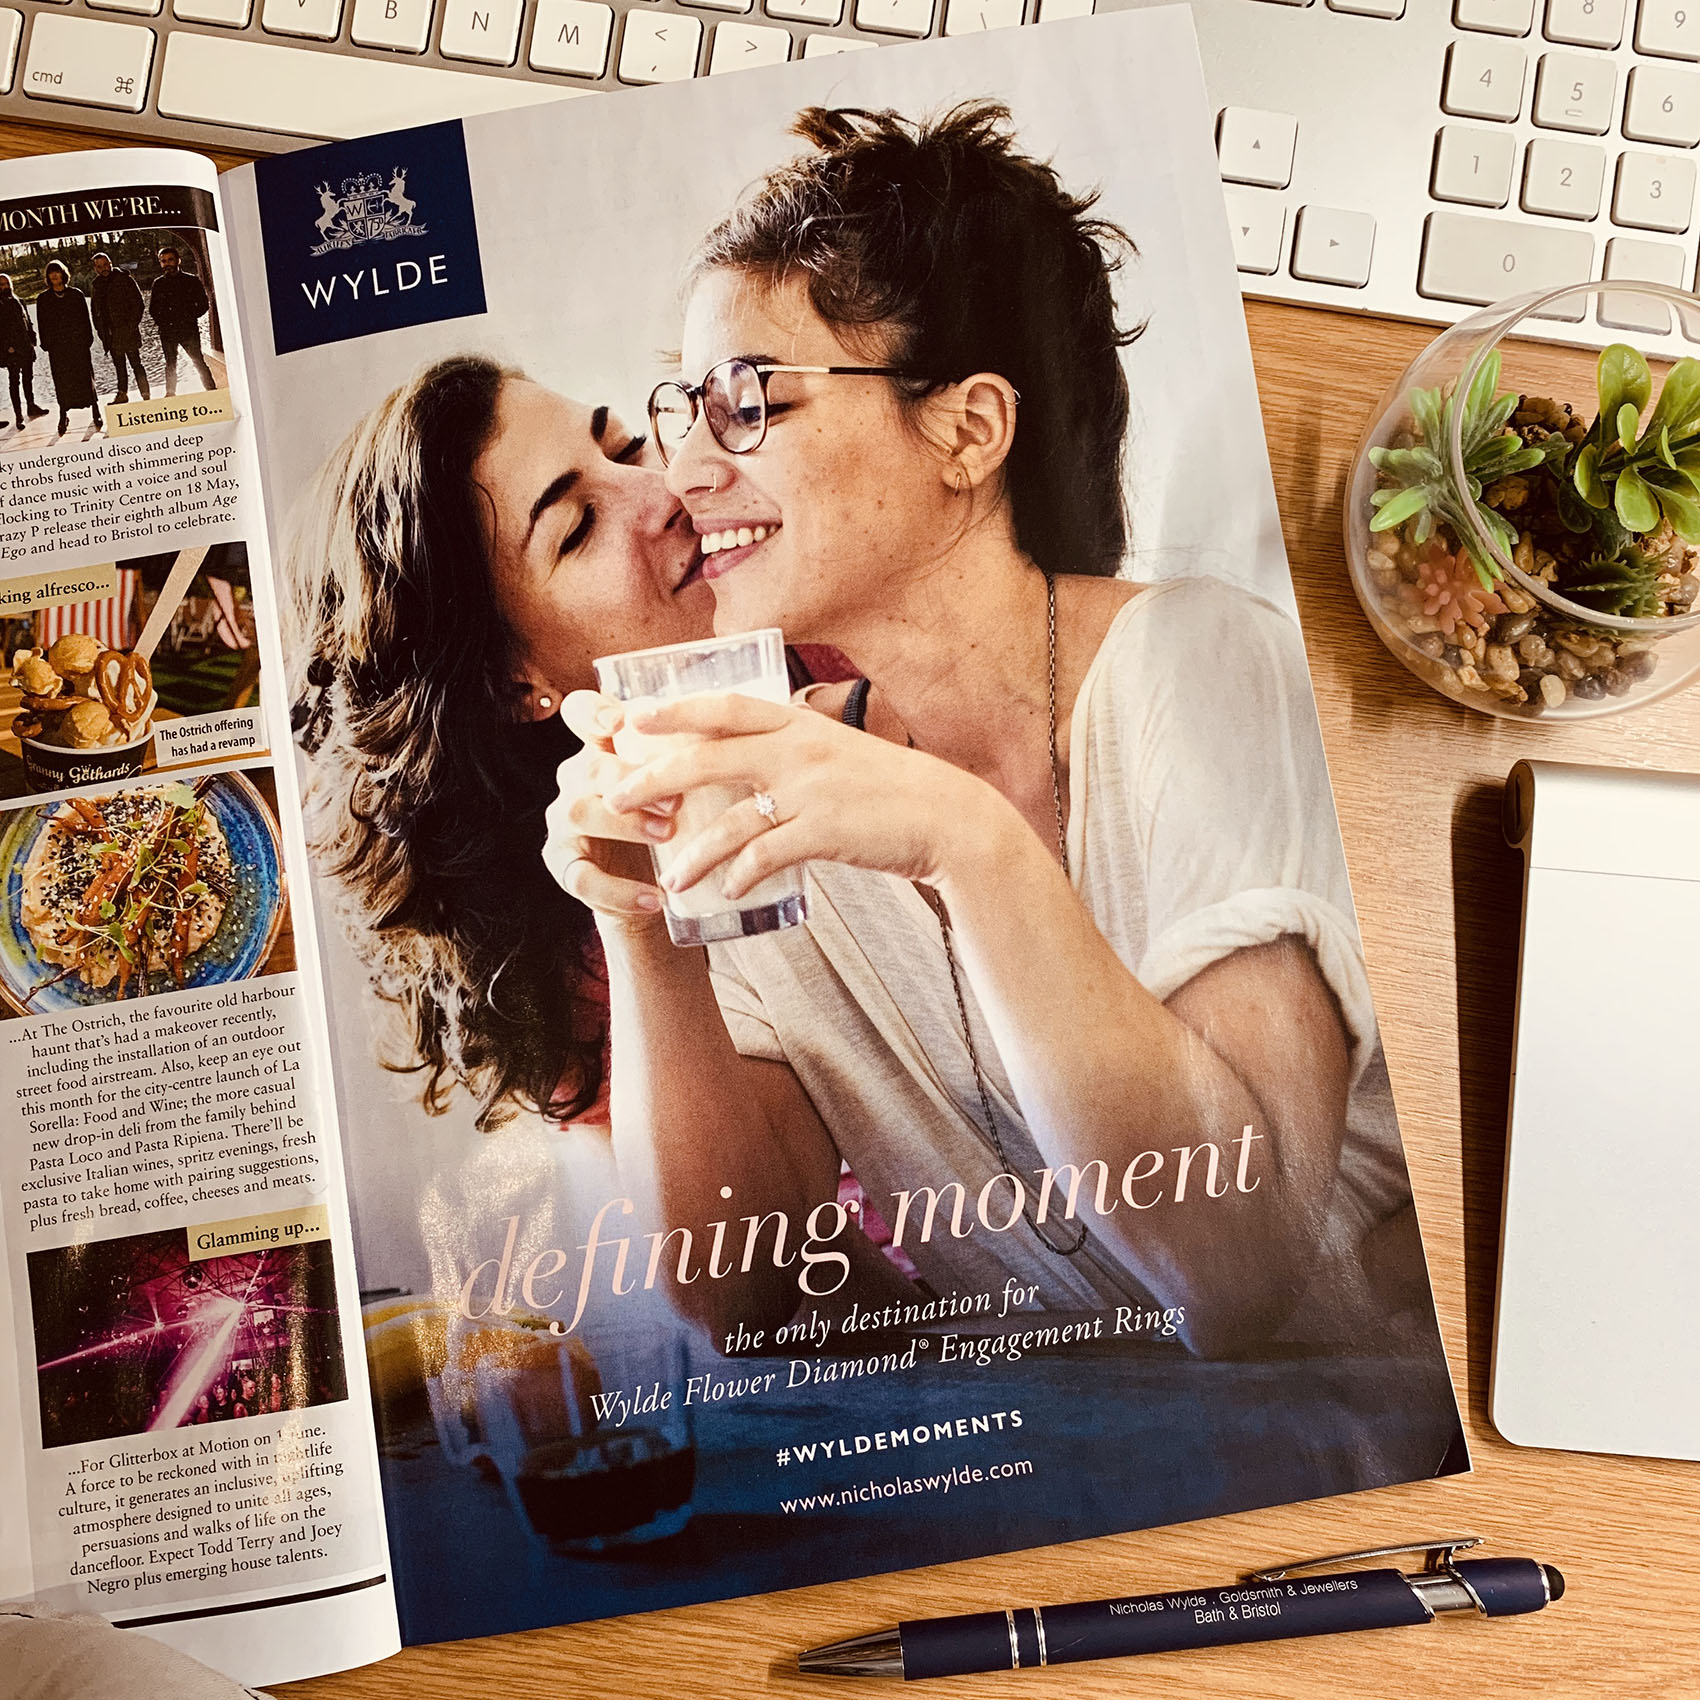 Nicholas Wylde Jeweller's First LGBTQ+ advert in a major mainstream campaign